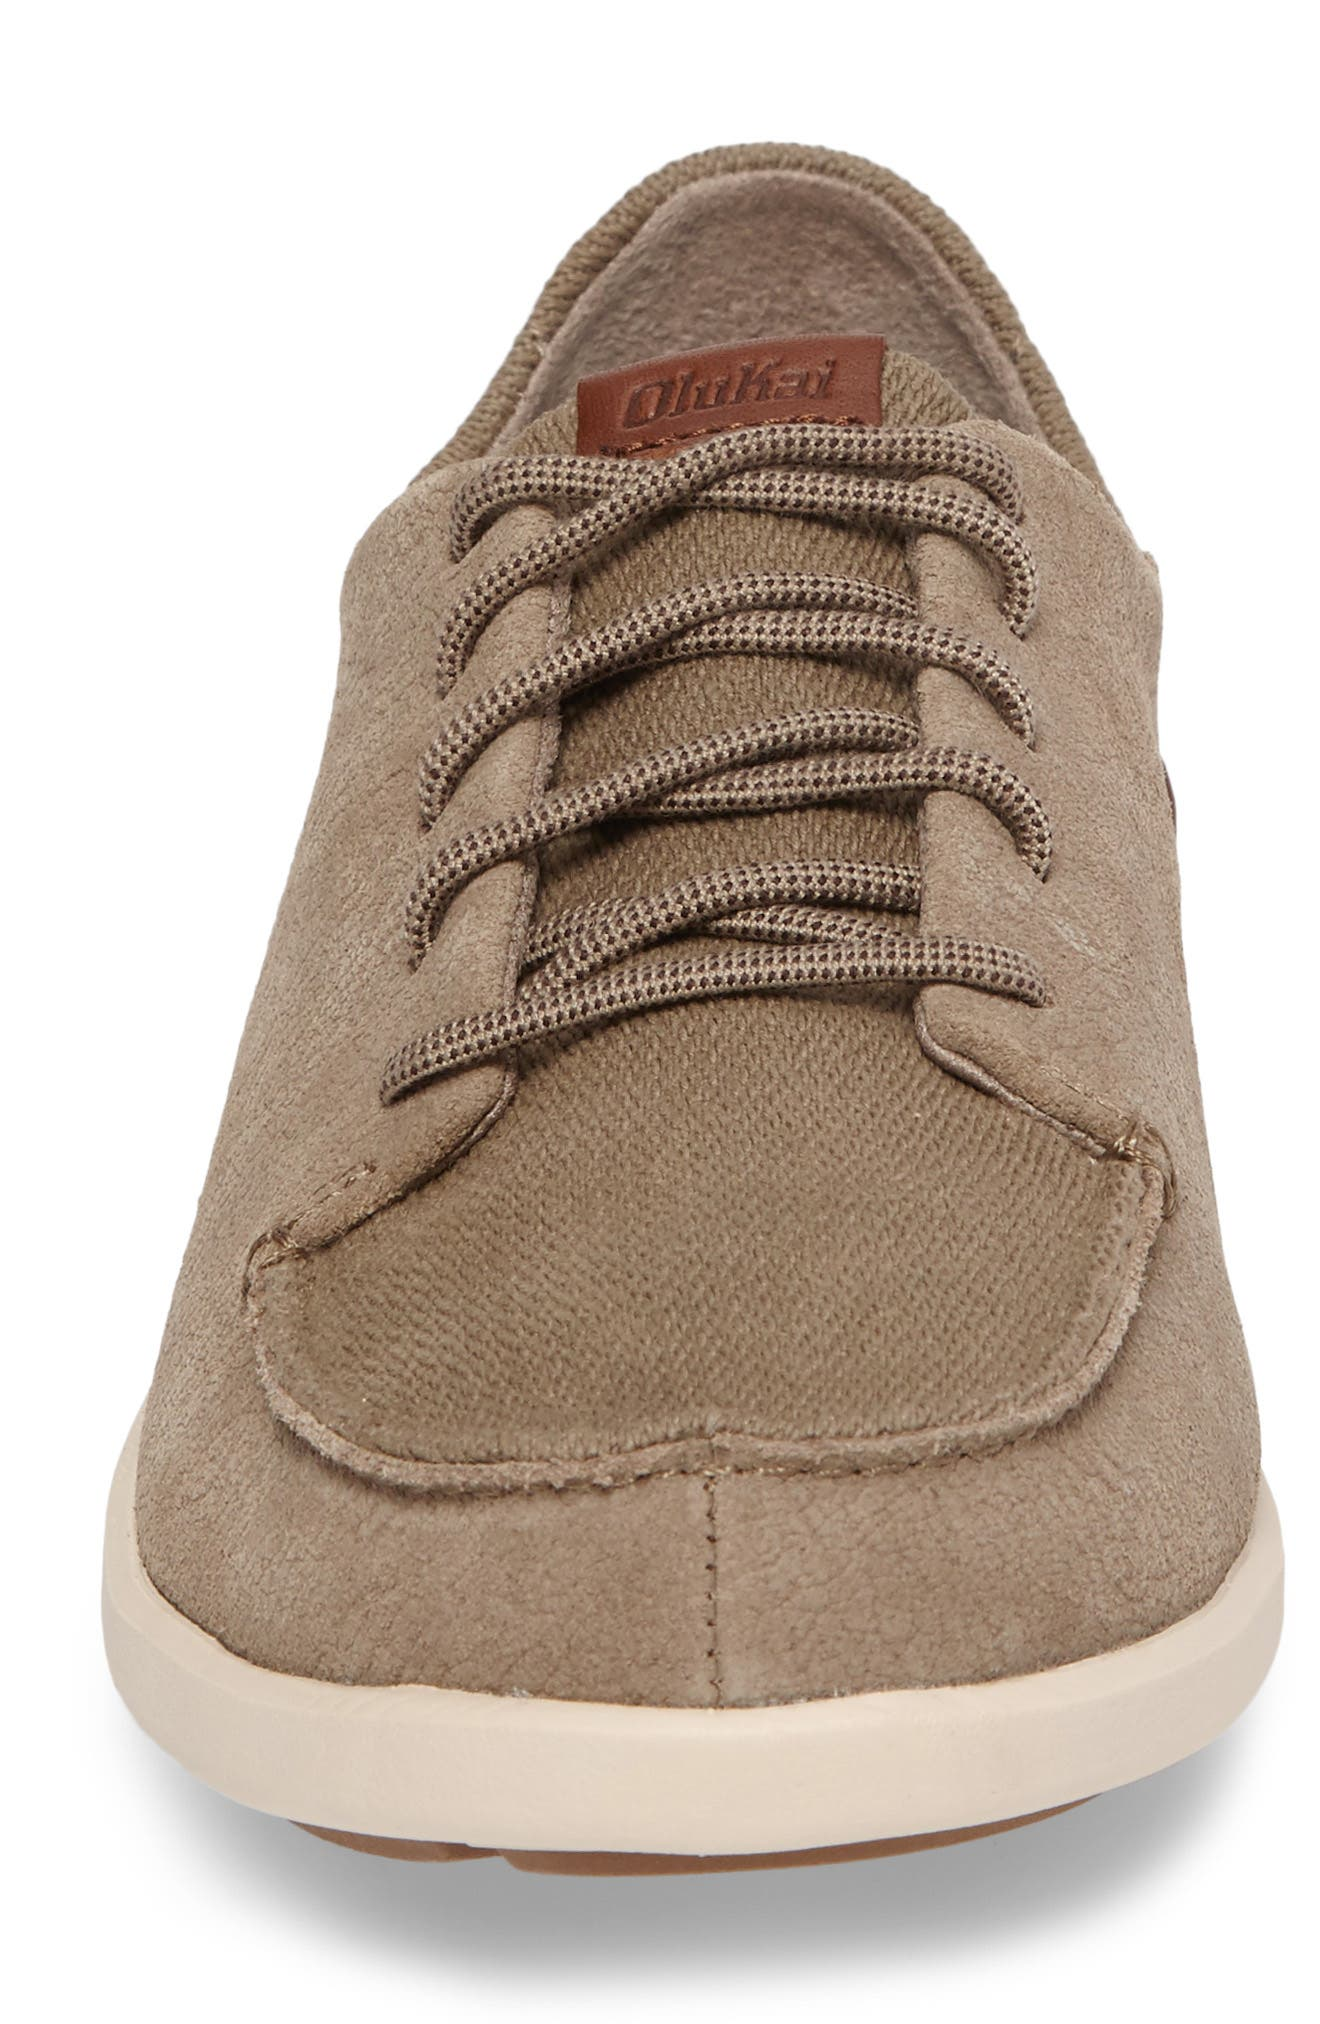 Manoa Collapsible Sneaker,                             Alternate thumbnail 4, color,                             200